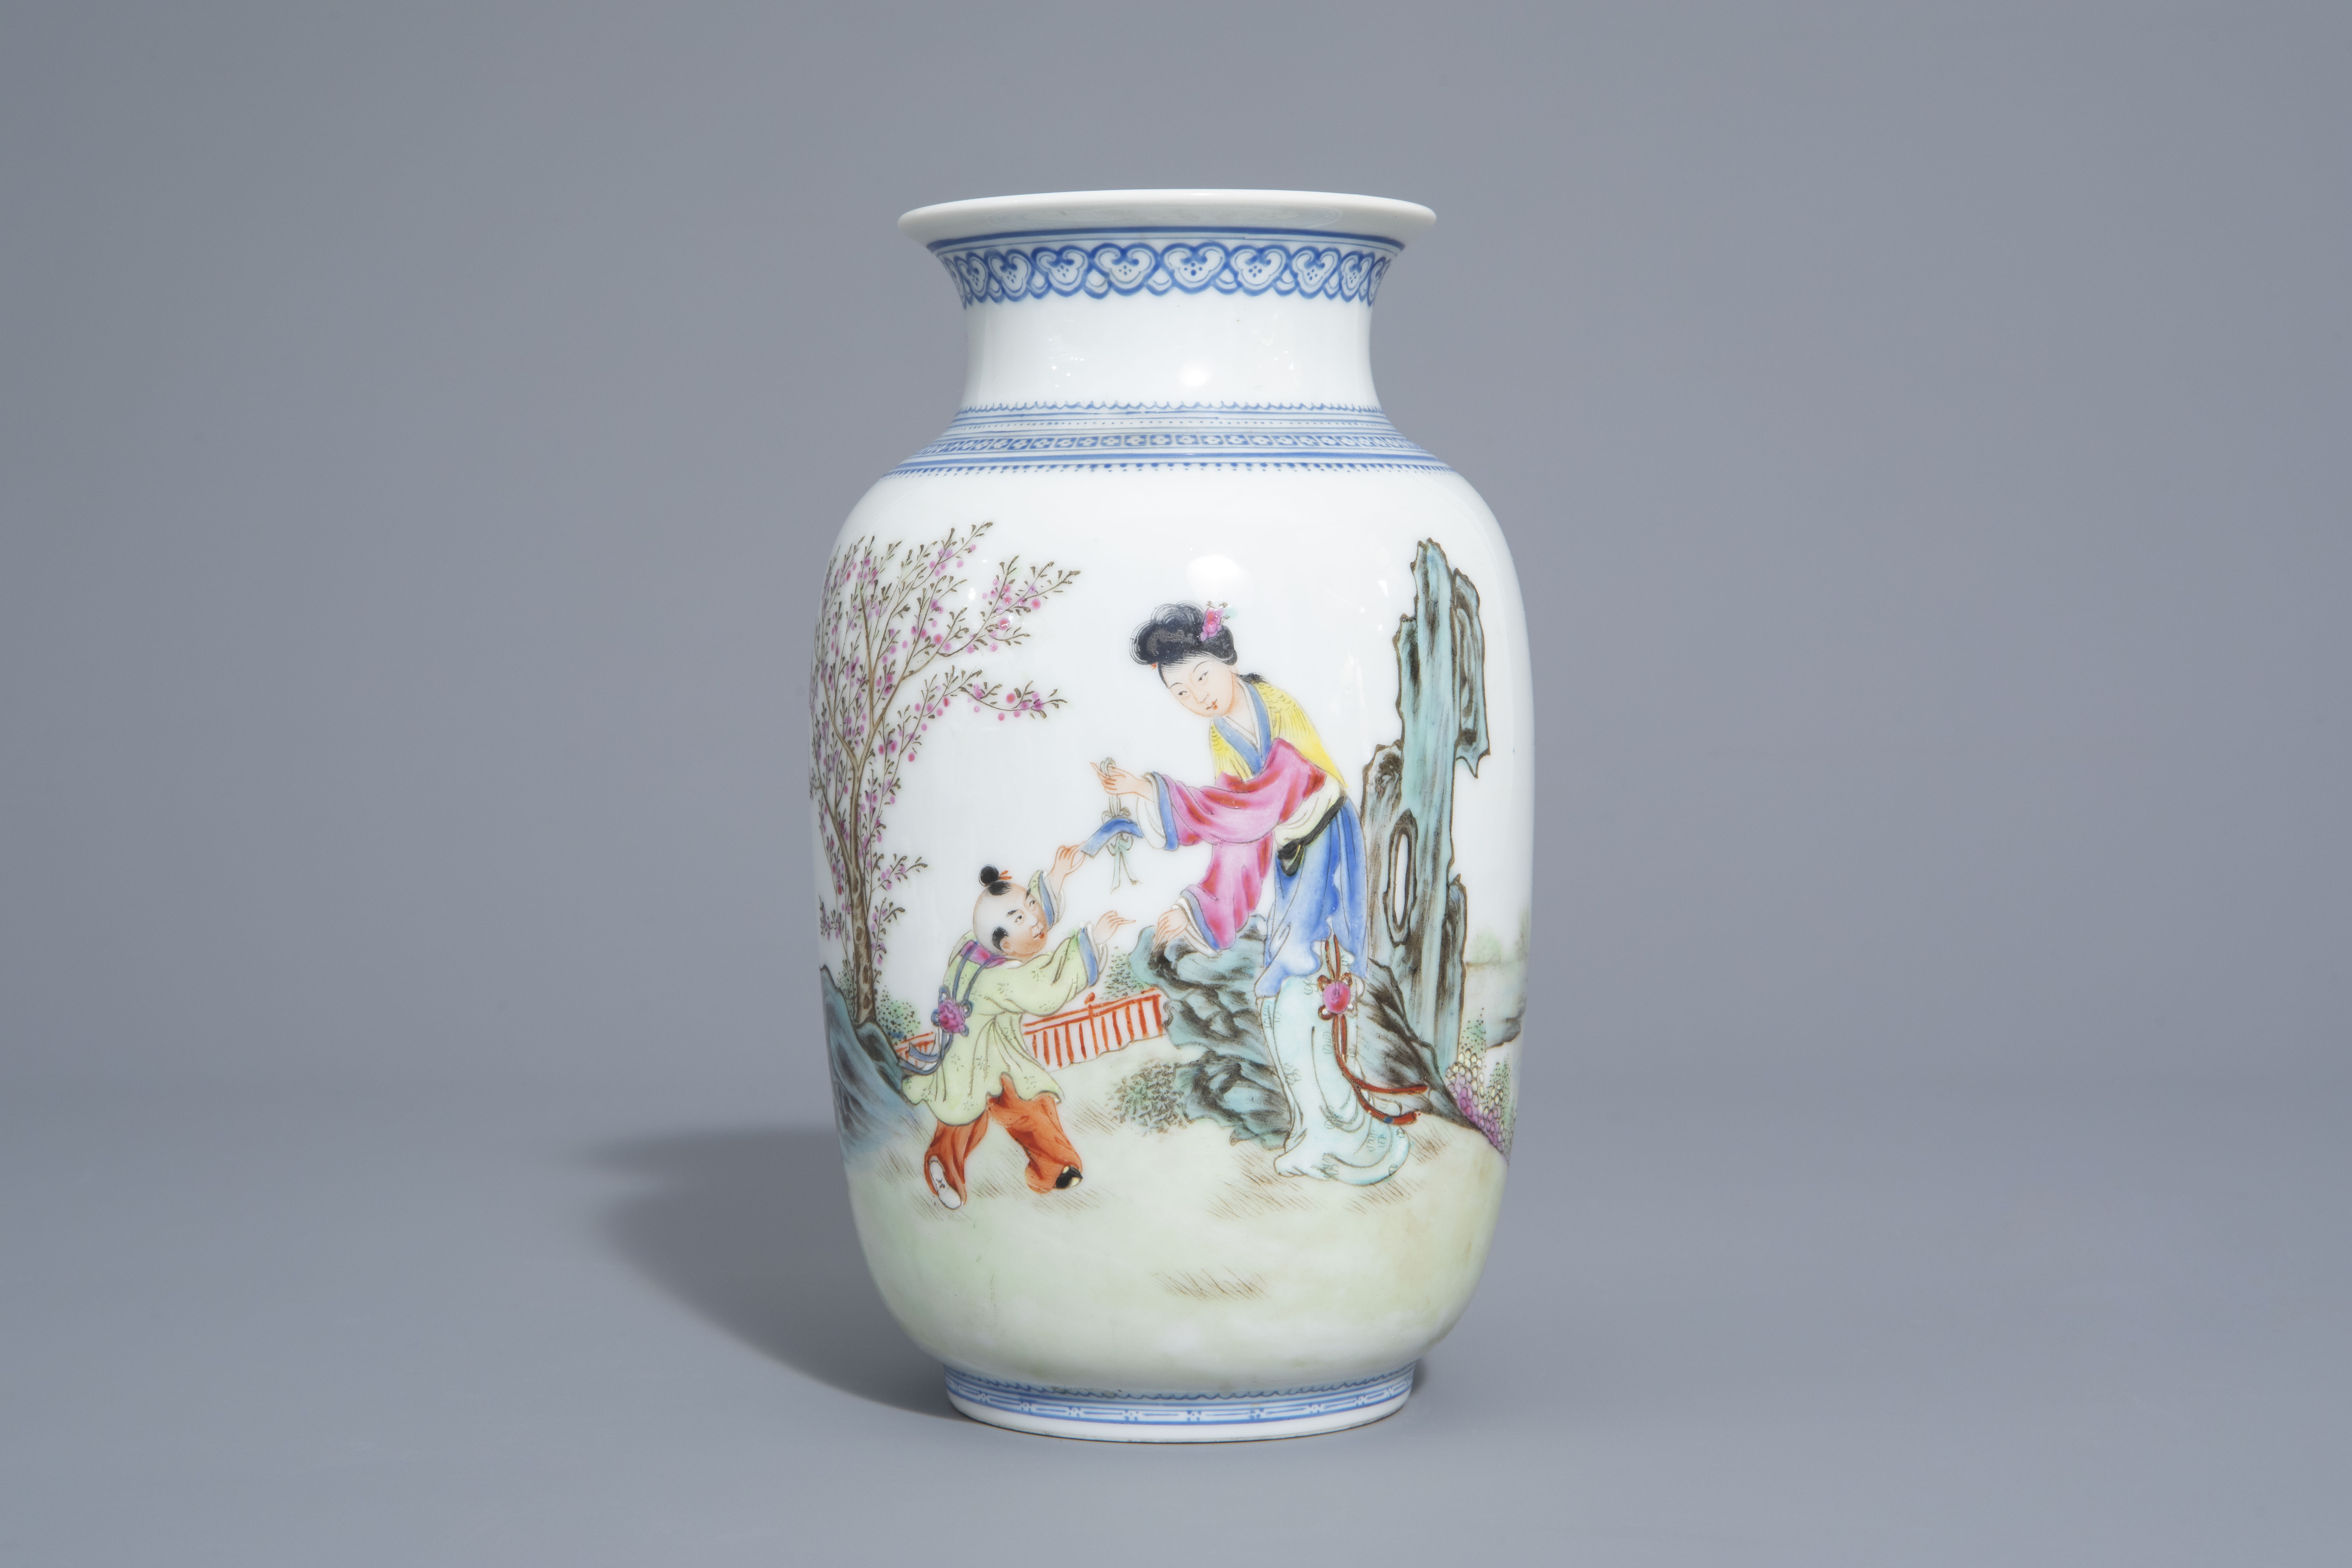 A Chinese famille rose eggshell vase and six 'Wu Shuang Pu' covers, 19th/20th C. - Image 3 of 18